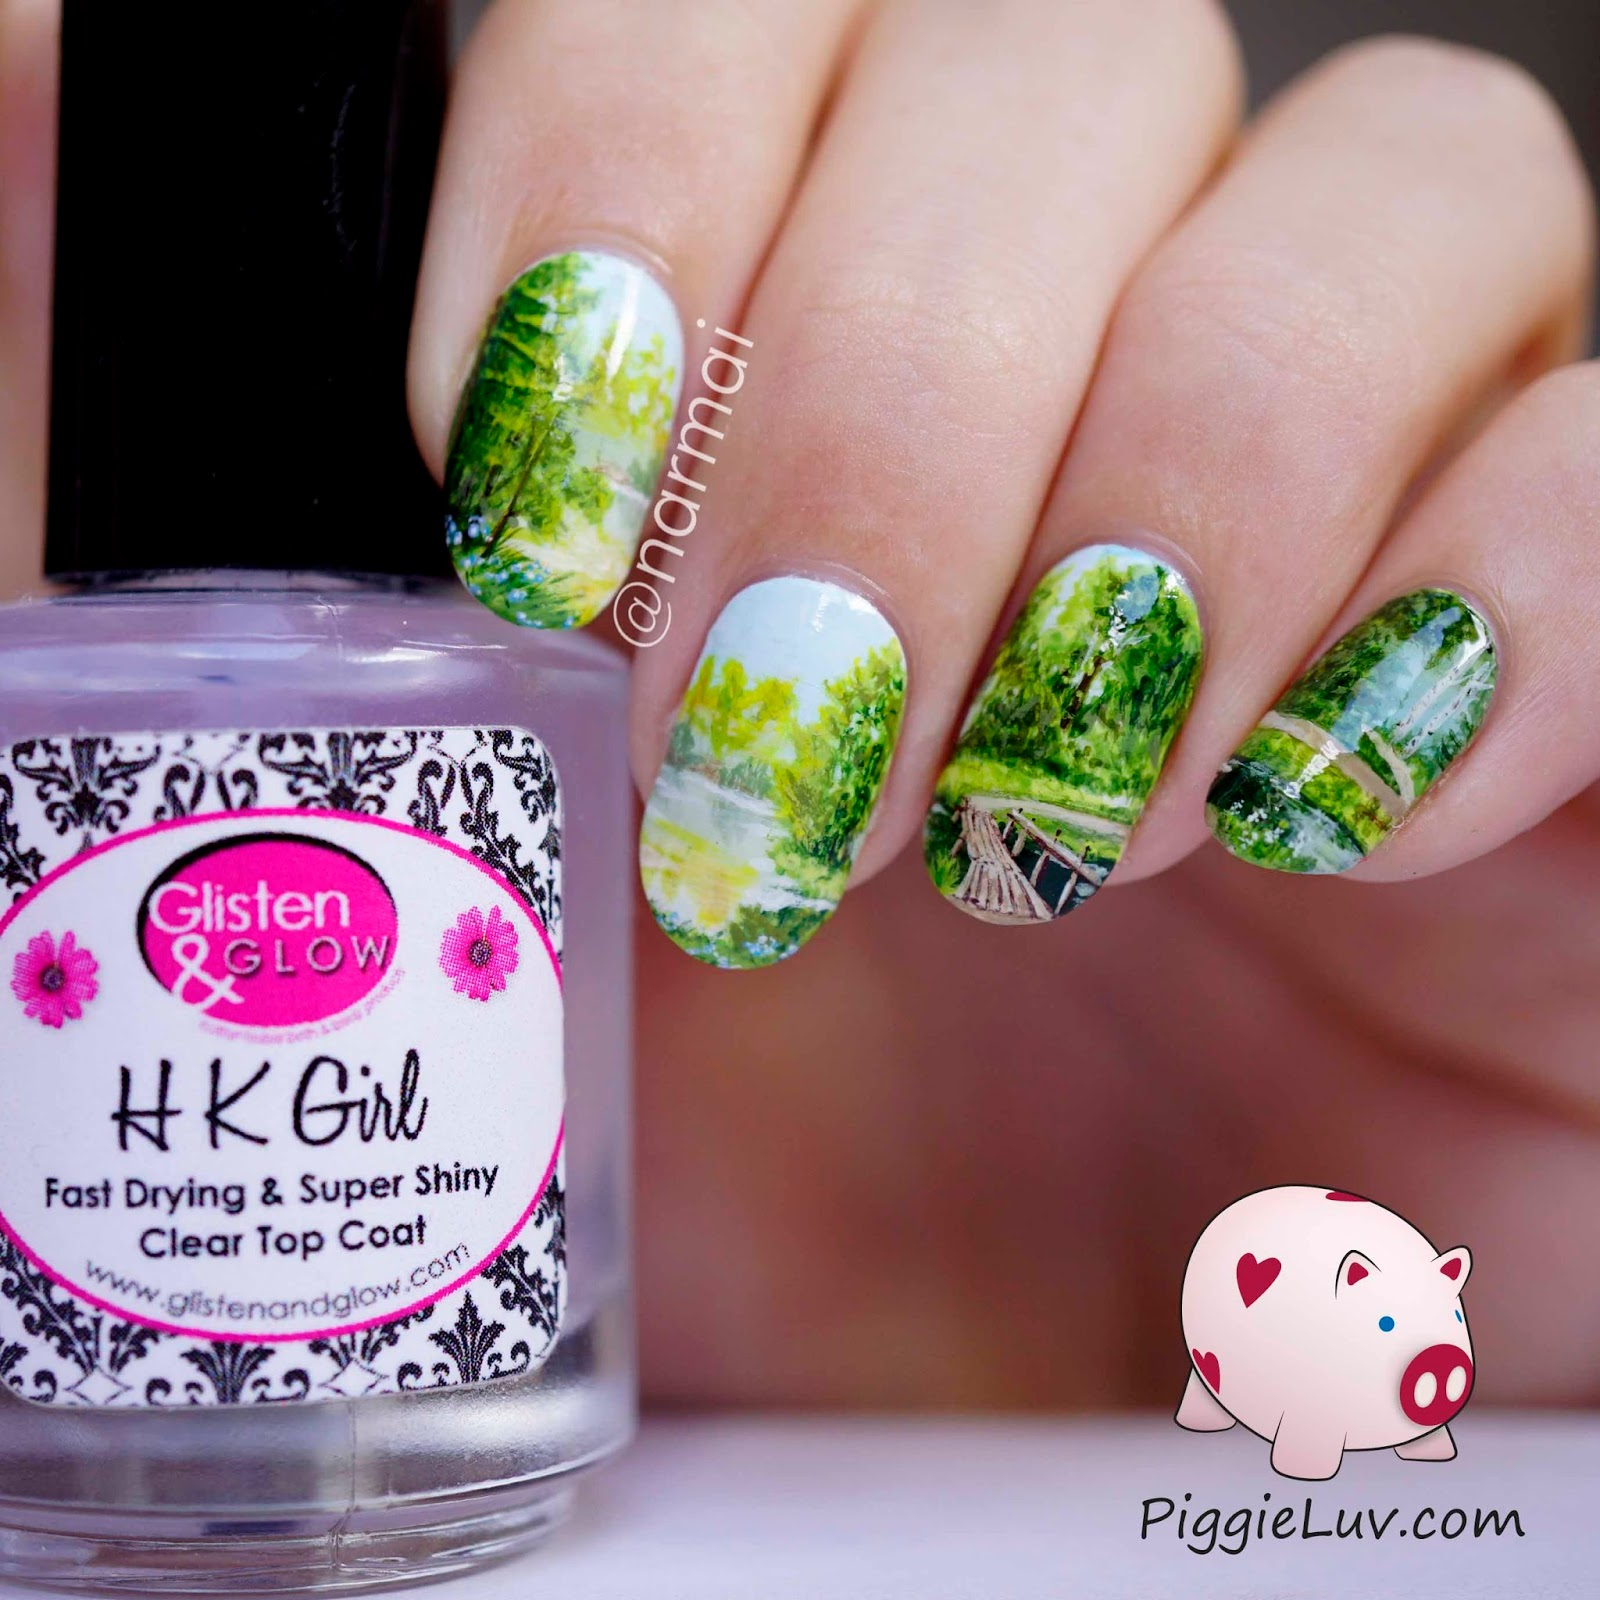 PiggieLuv: Freehand \'Path to serenity\' nail art